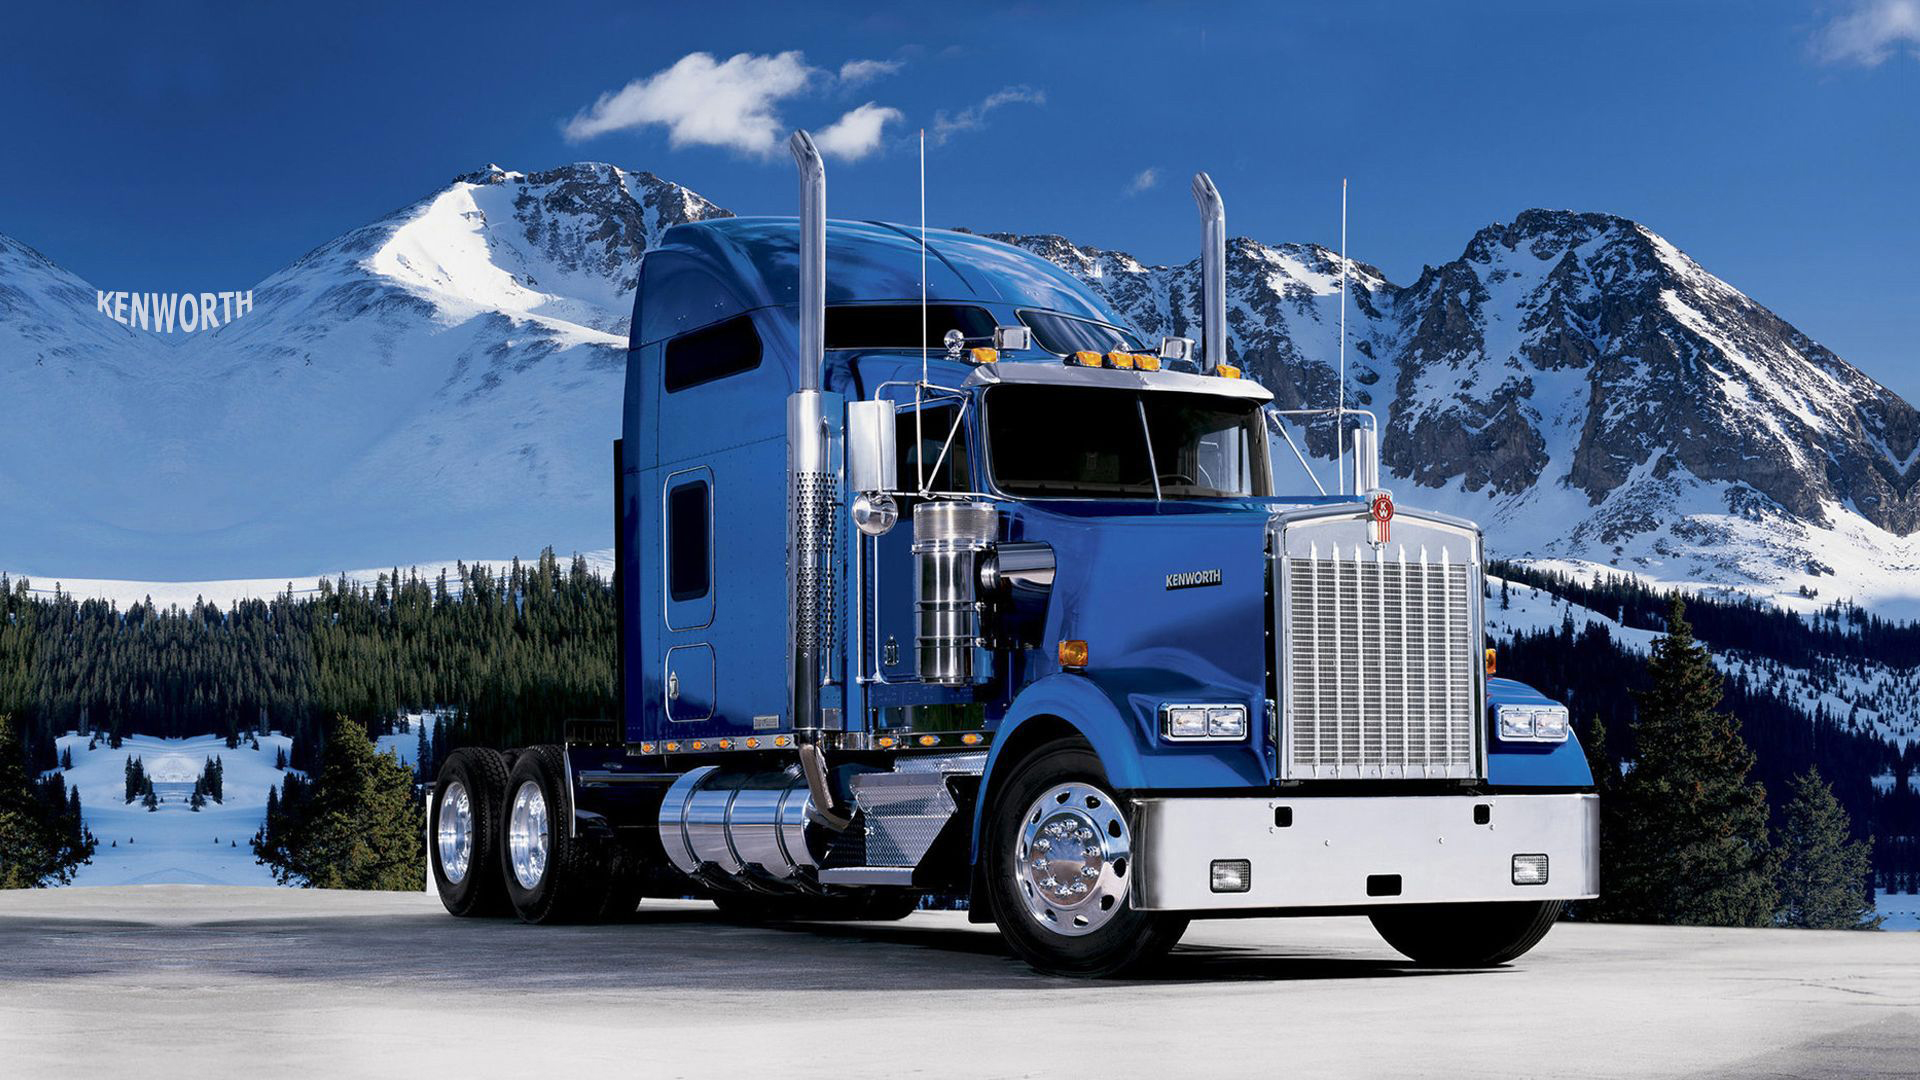 Kenworth Full Hd Wallpaper And Background Image